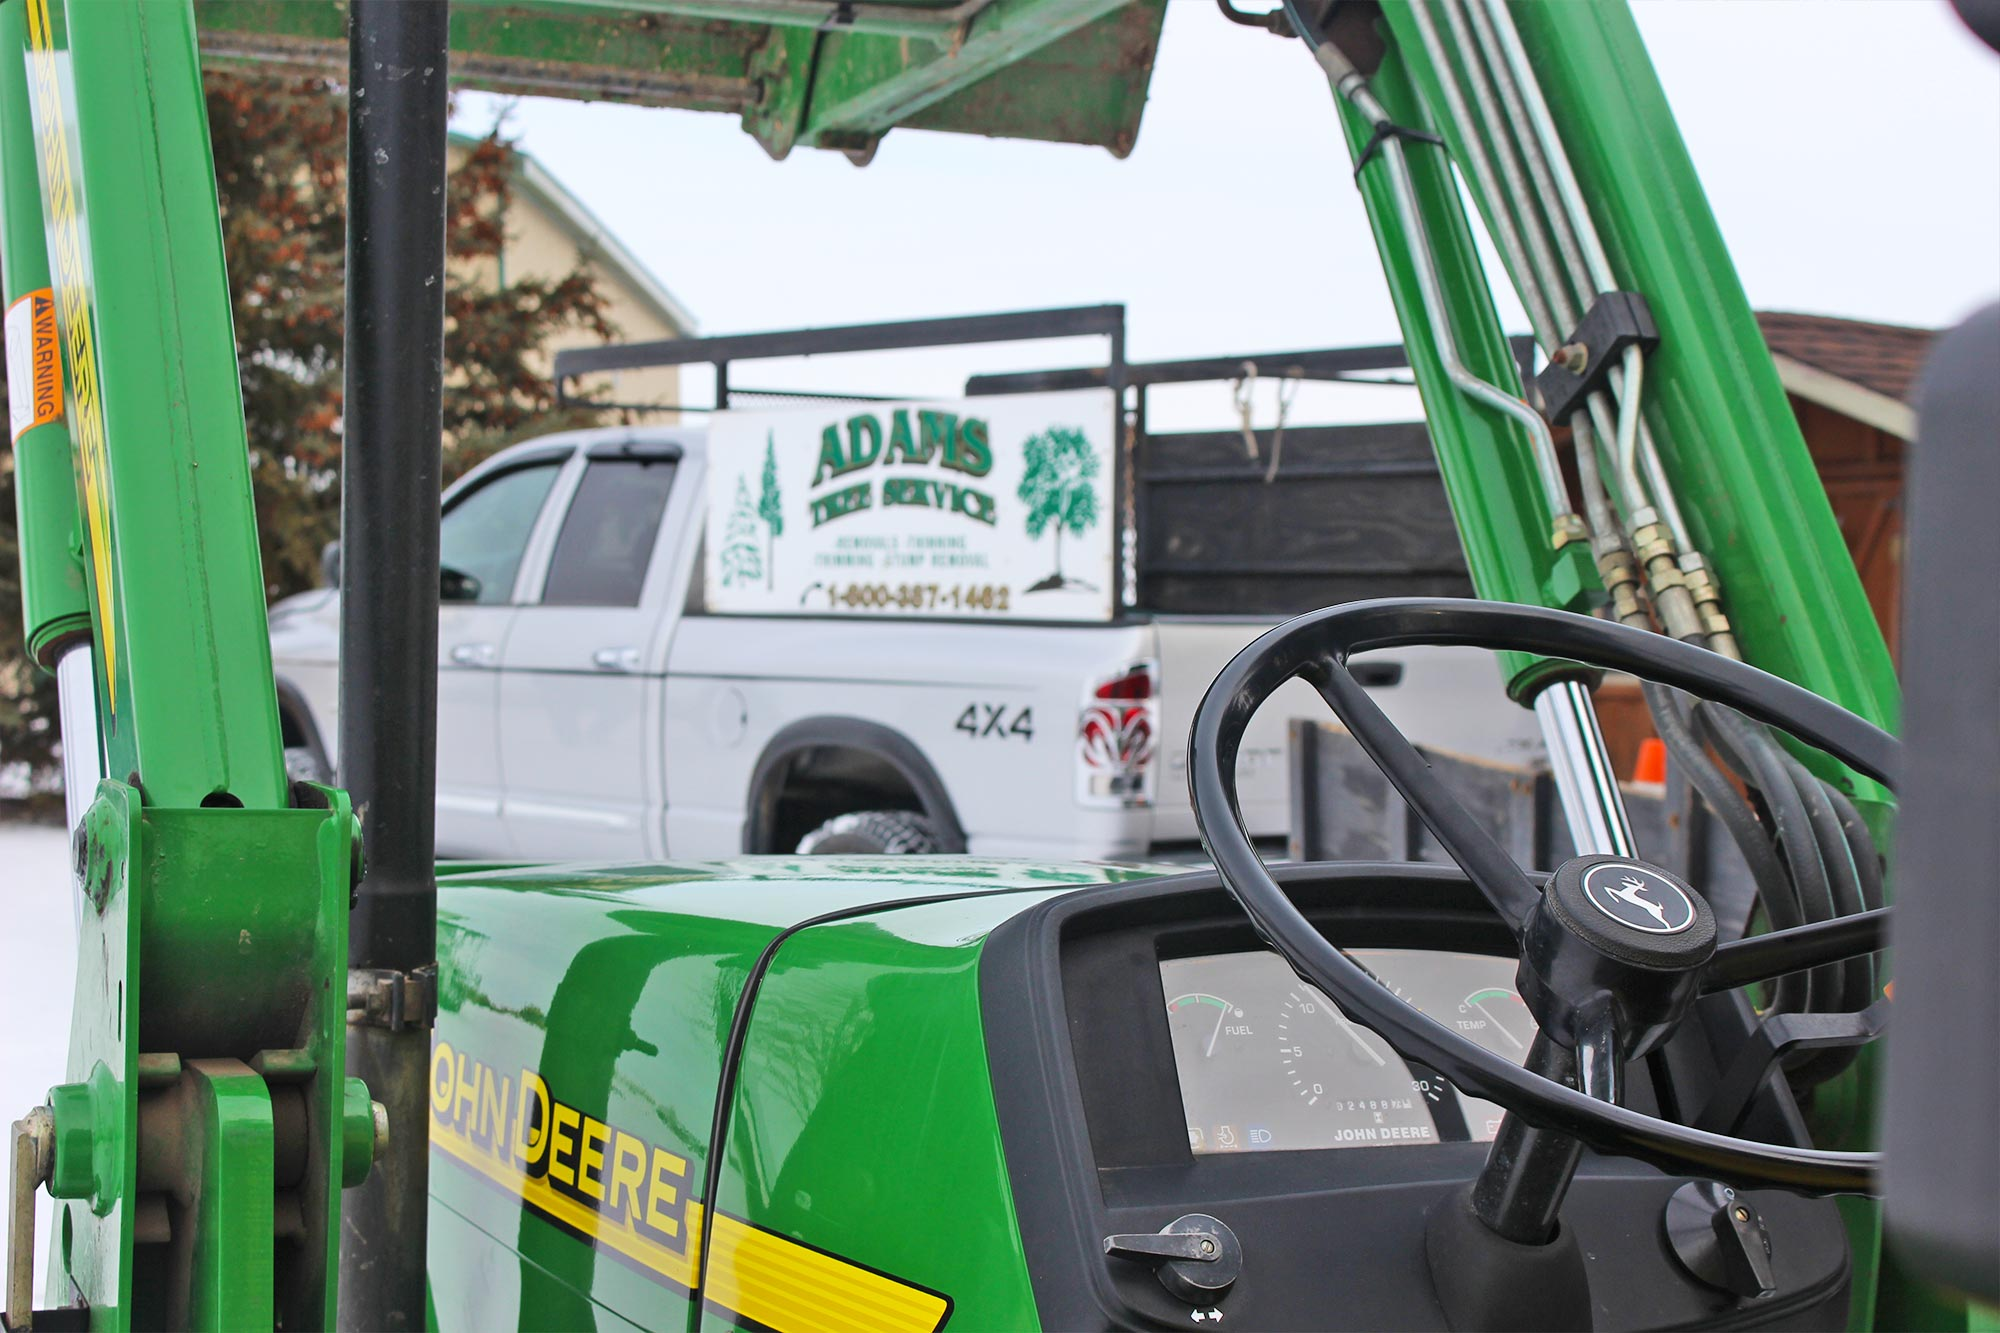 Adams Tree Service tractor and truck